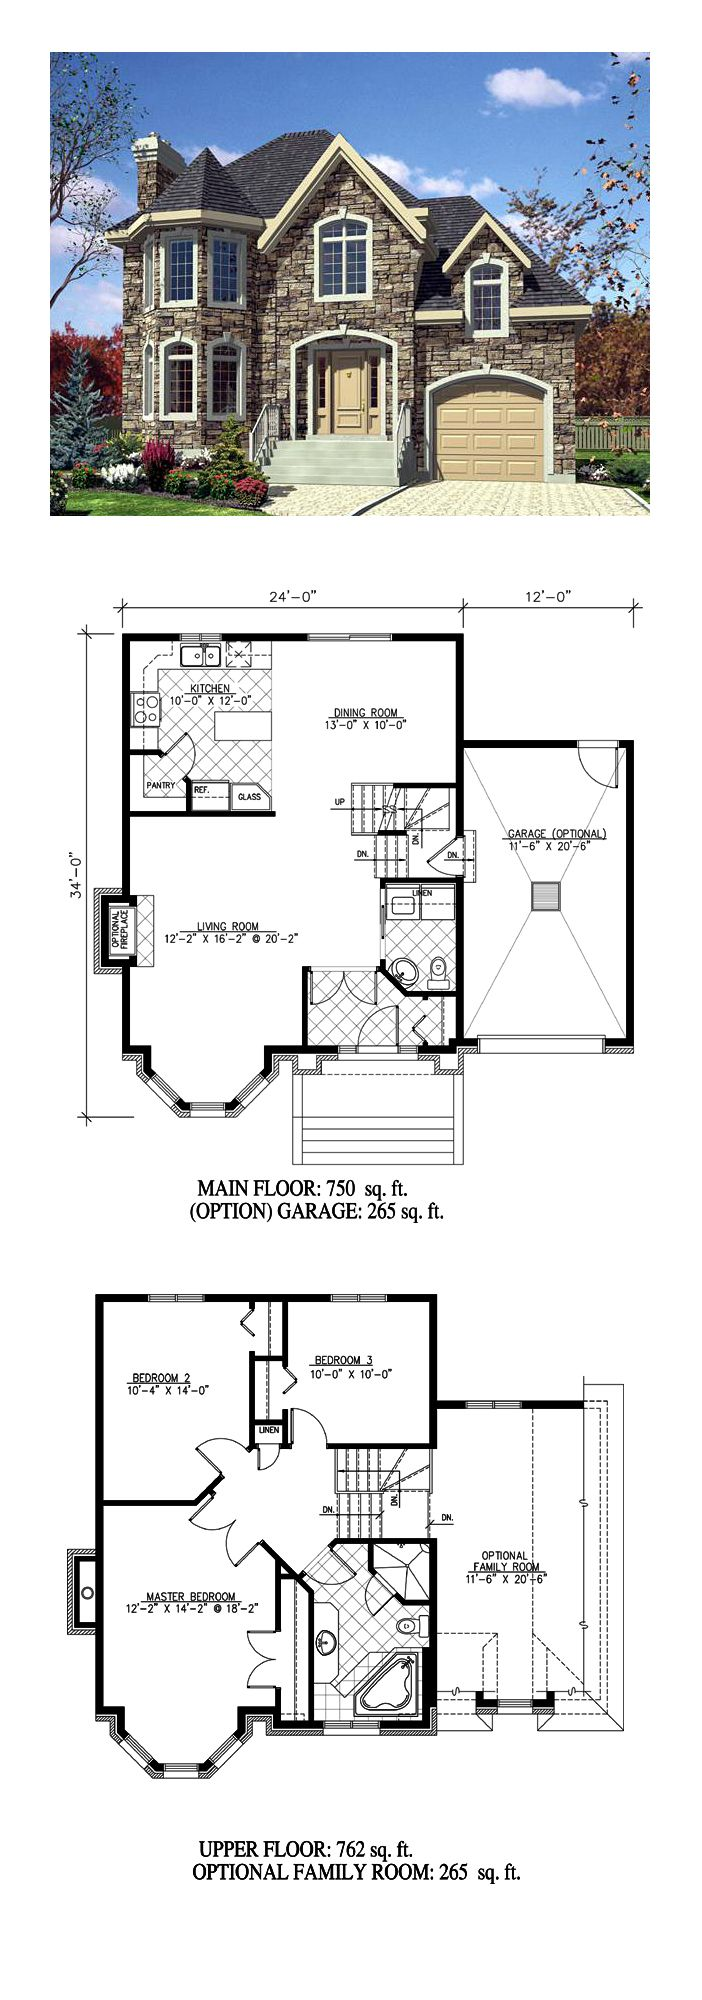 Best 25 sims house ideas on pinterest sims house plans 3 family house plans